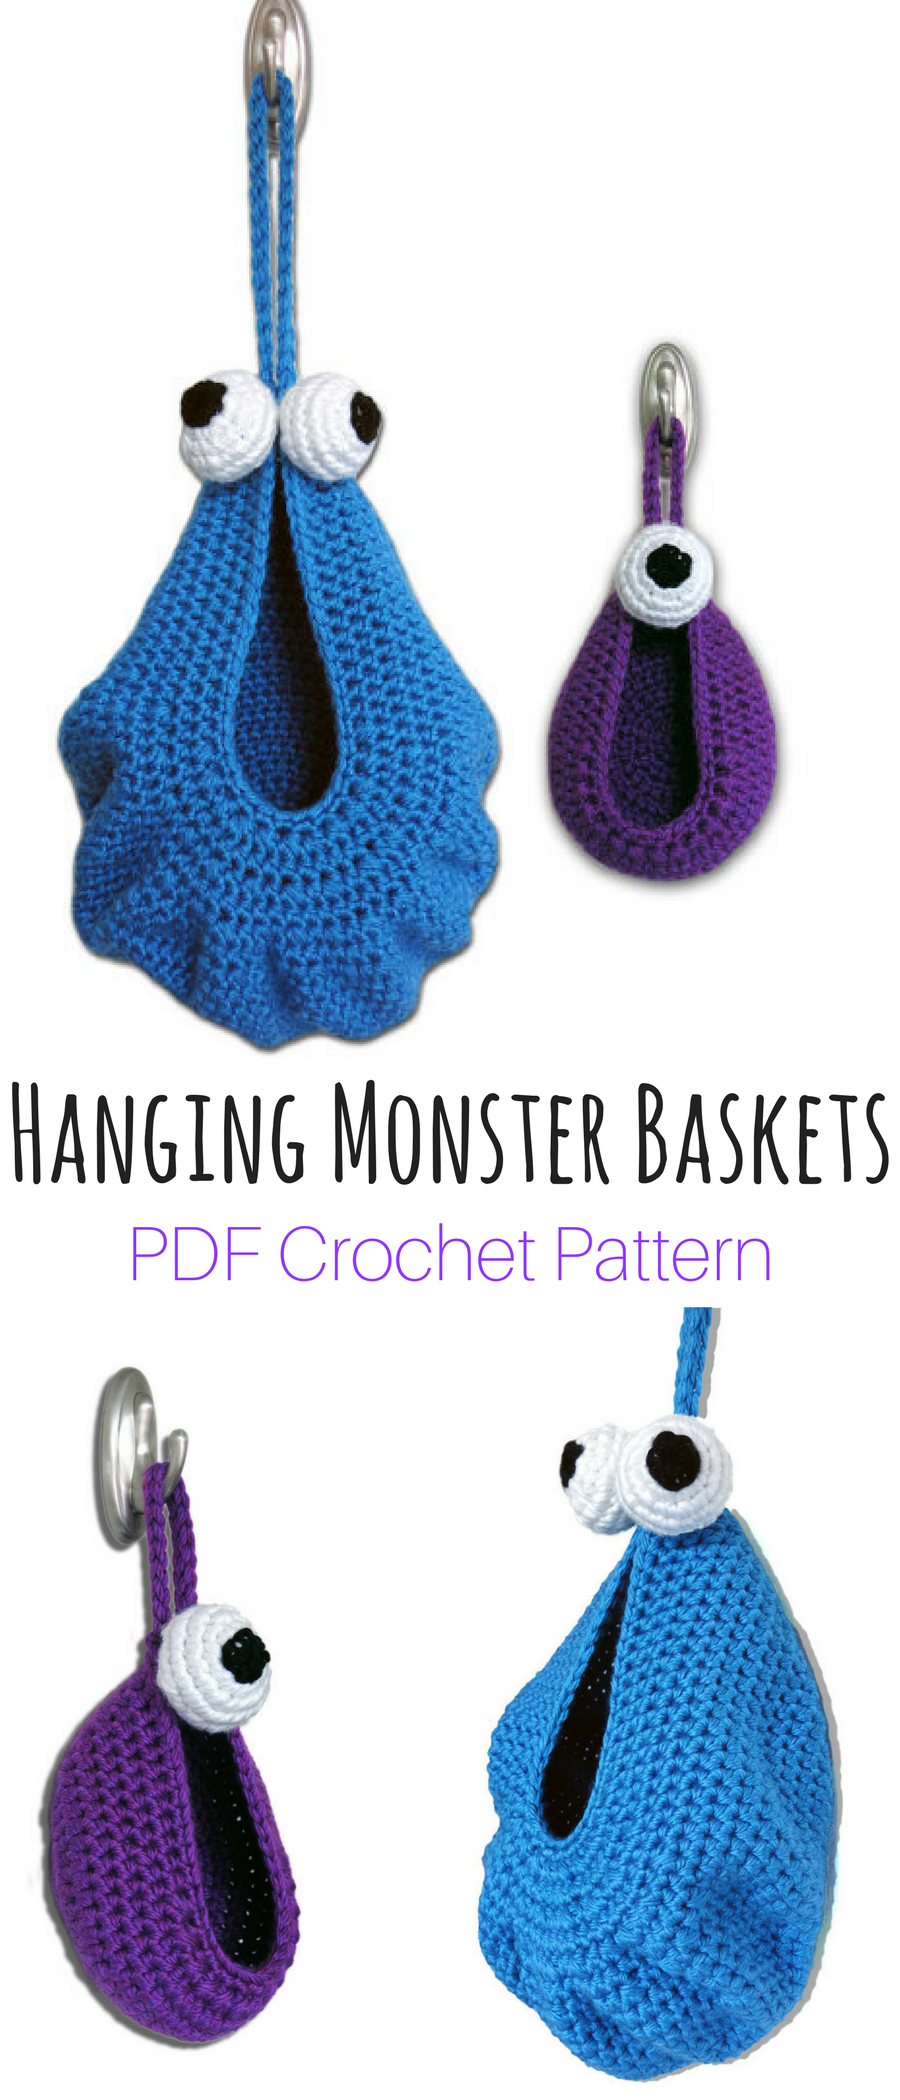 Hanging Monster Baskets Crochet Pattern. Awesome DIY crochet project ...